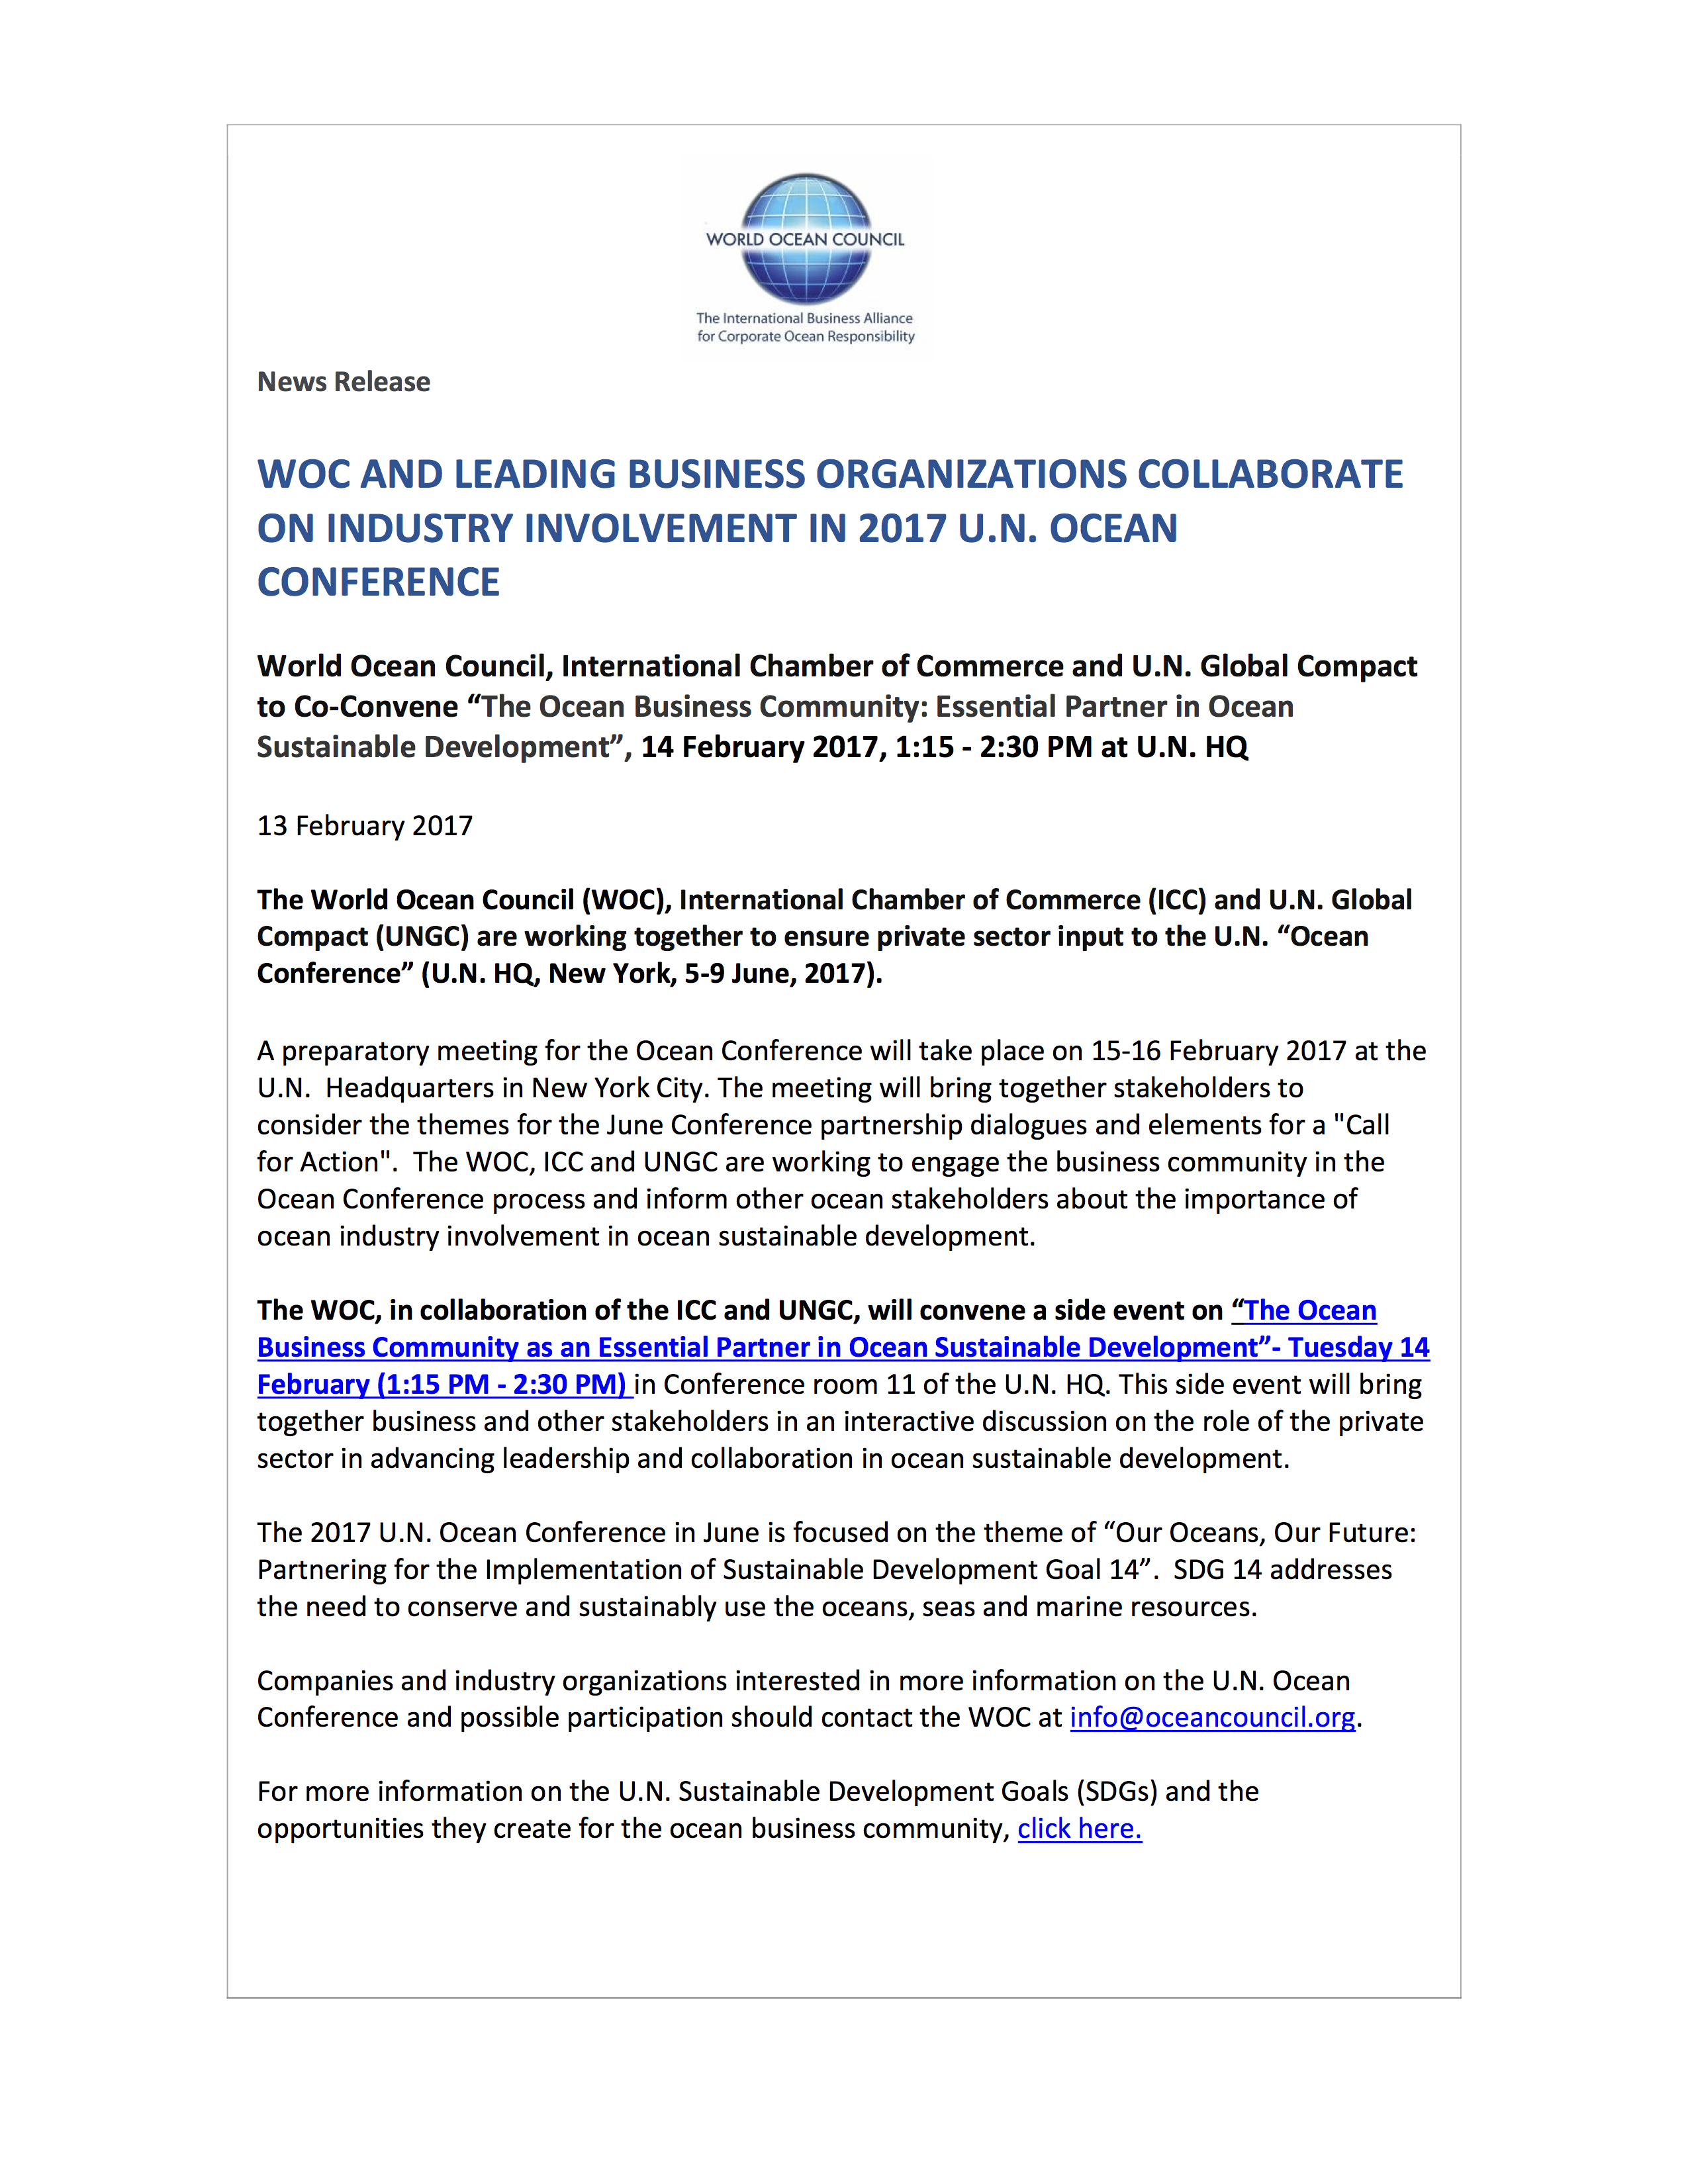 WOC News Release WOC Collaboration to Ensure Business at 2017 U.N. Ocean Conference